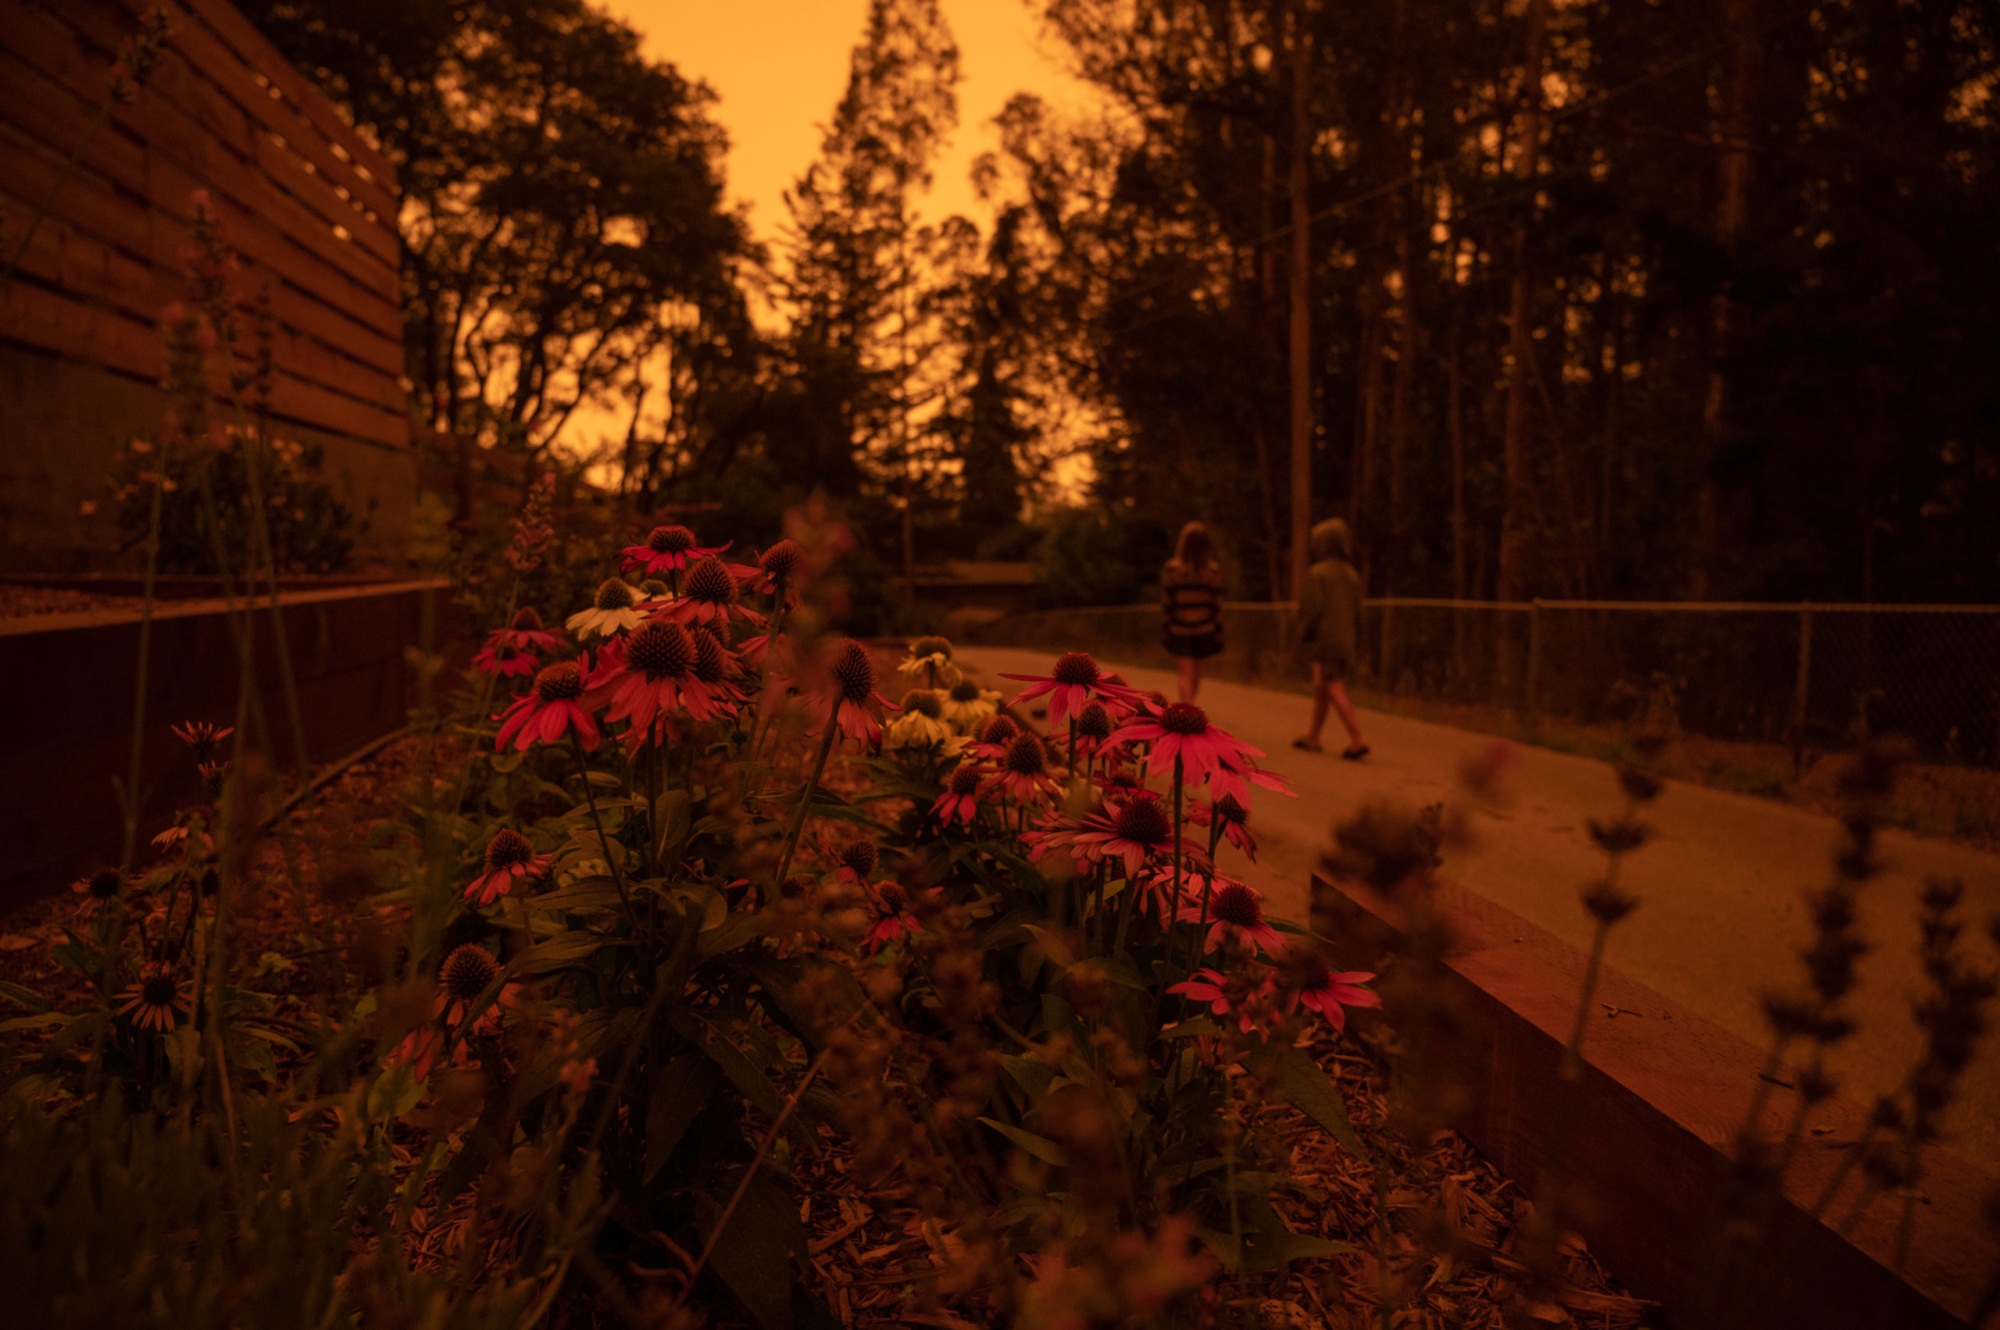 A dark orange glow covers a patch of asters with two children walk along a path in the background.